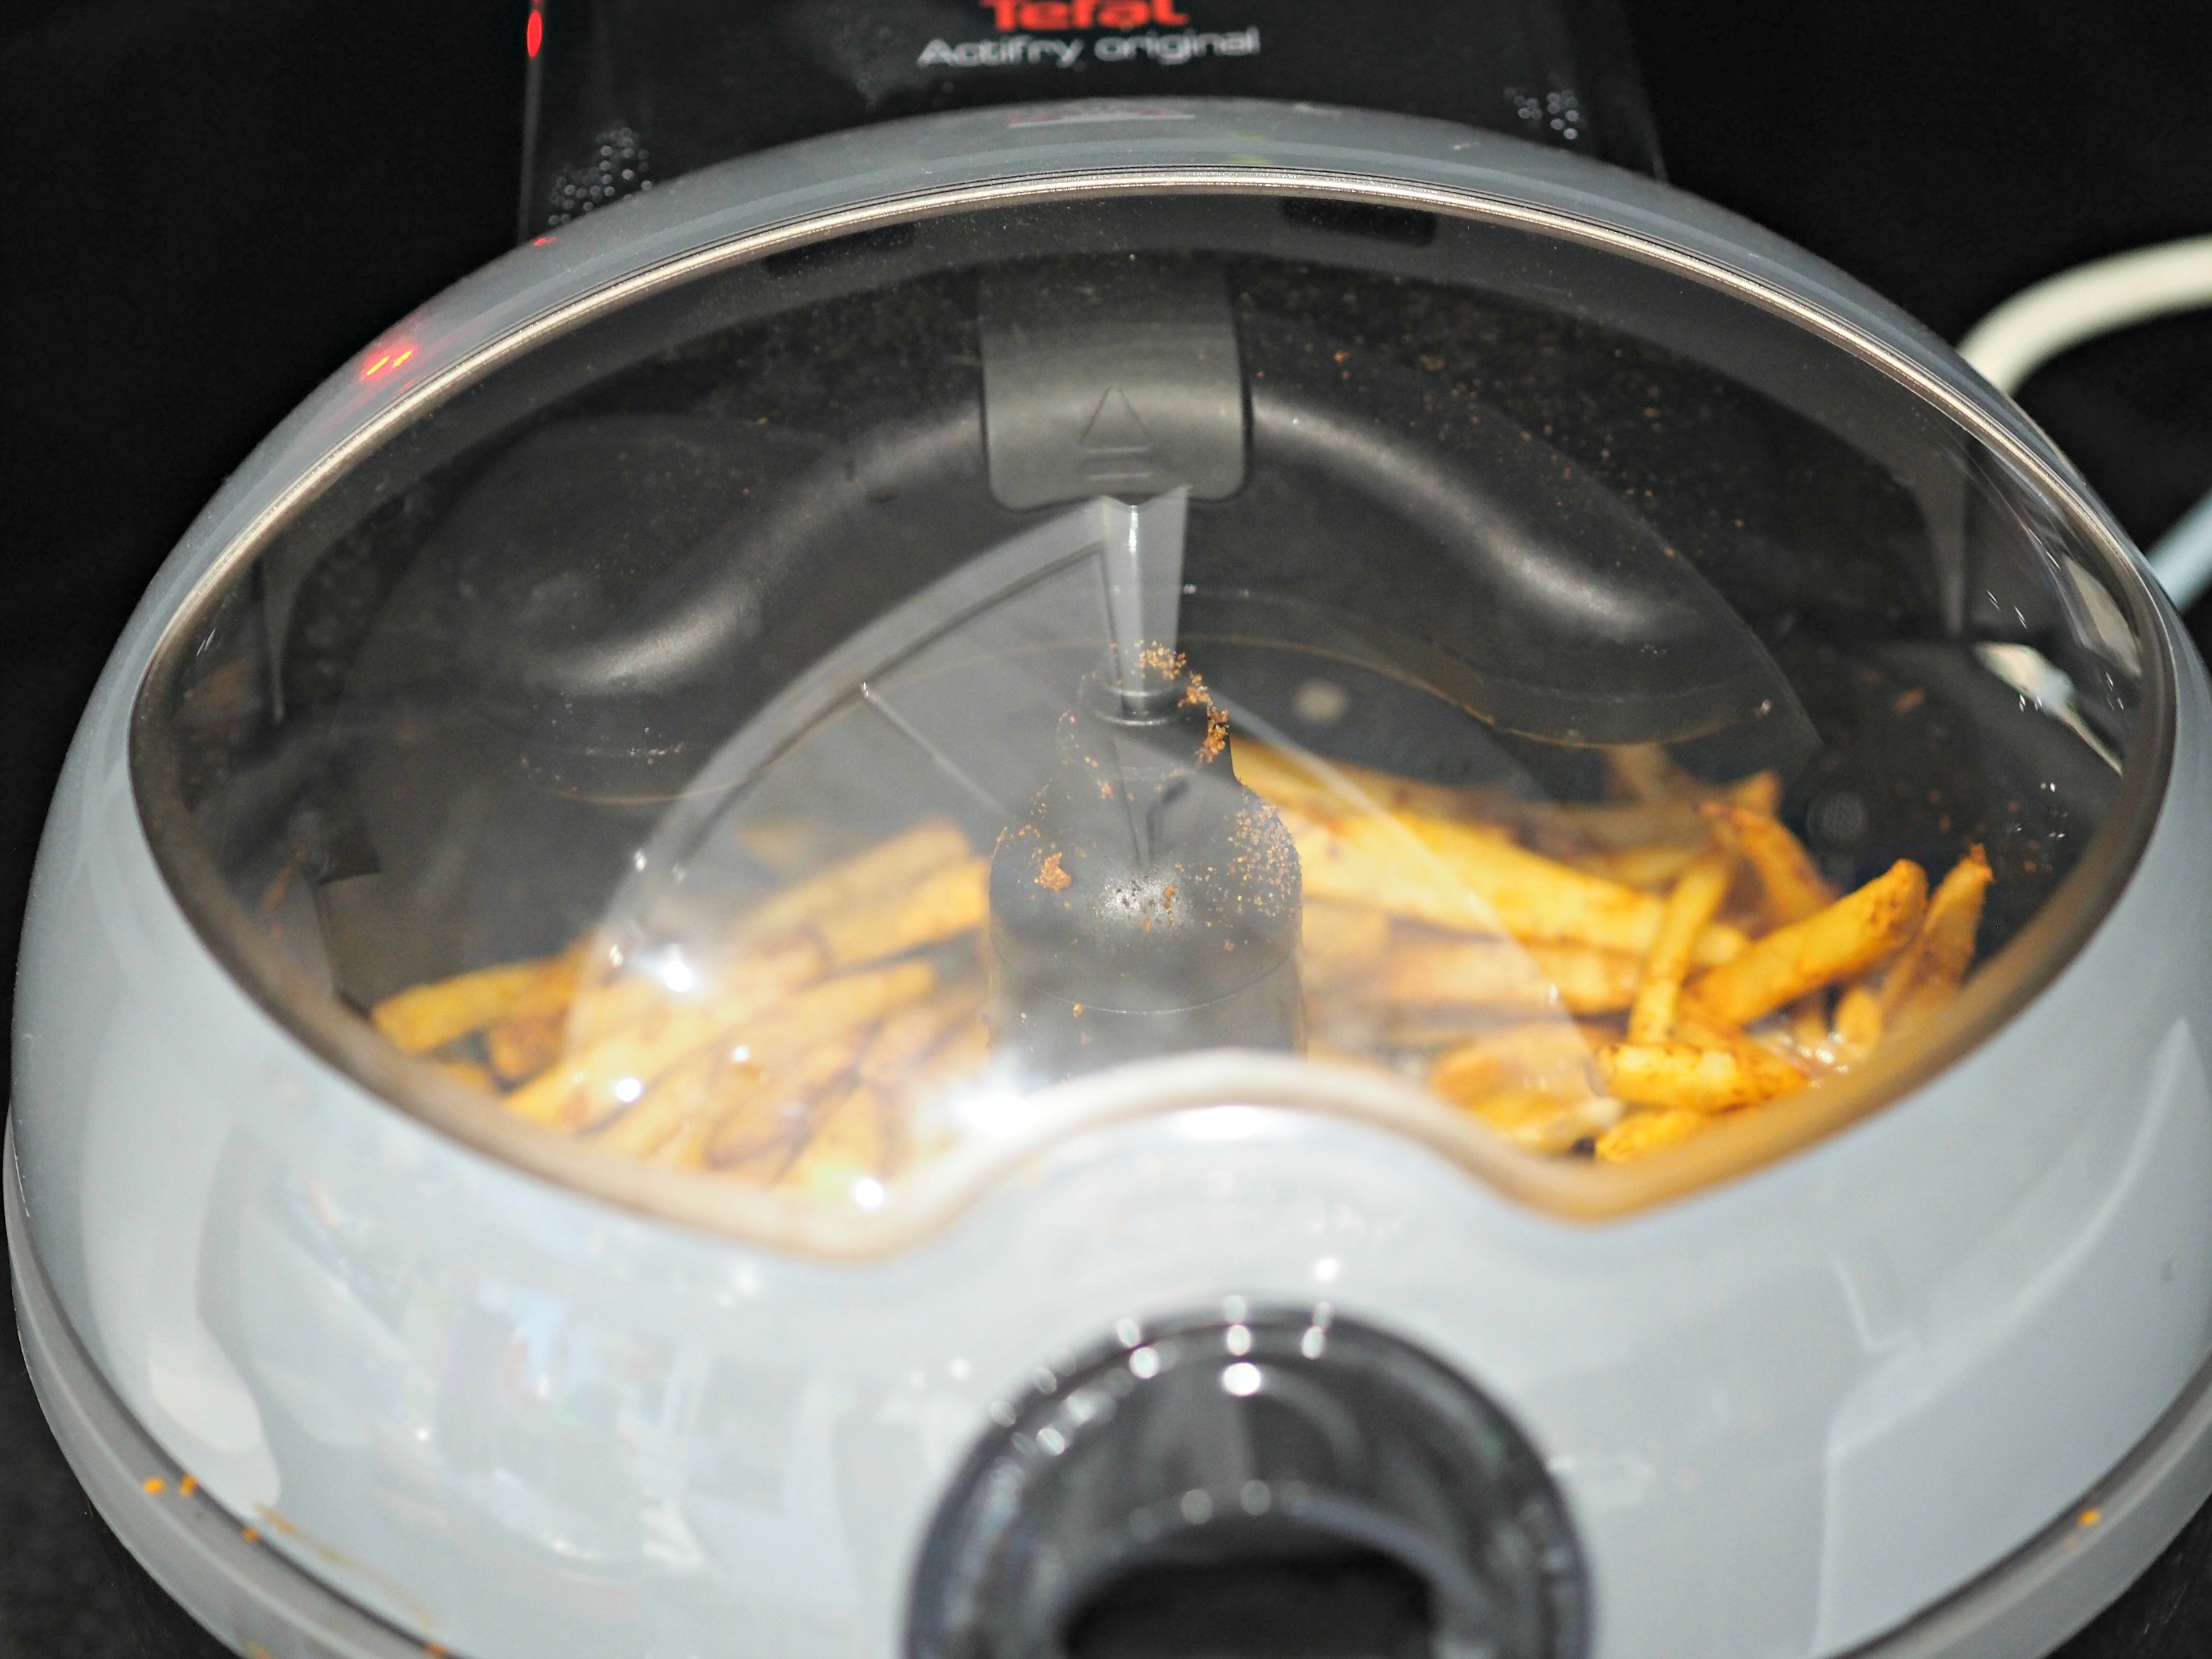 BEN'S ZONE Tefal ActiFry FZ740840 Review - chips cooking